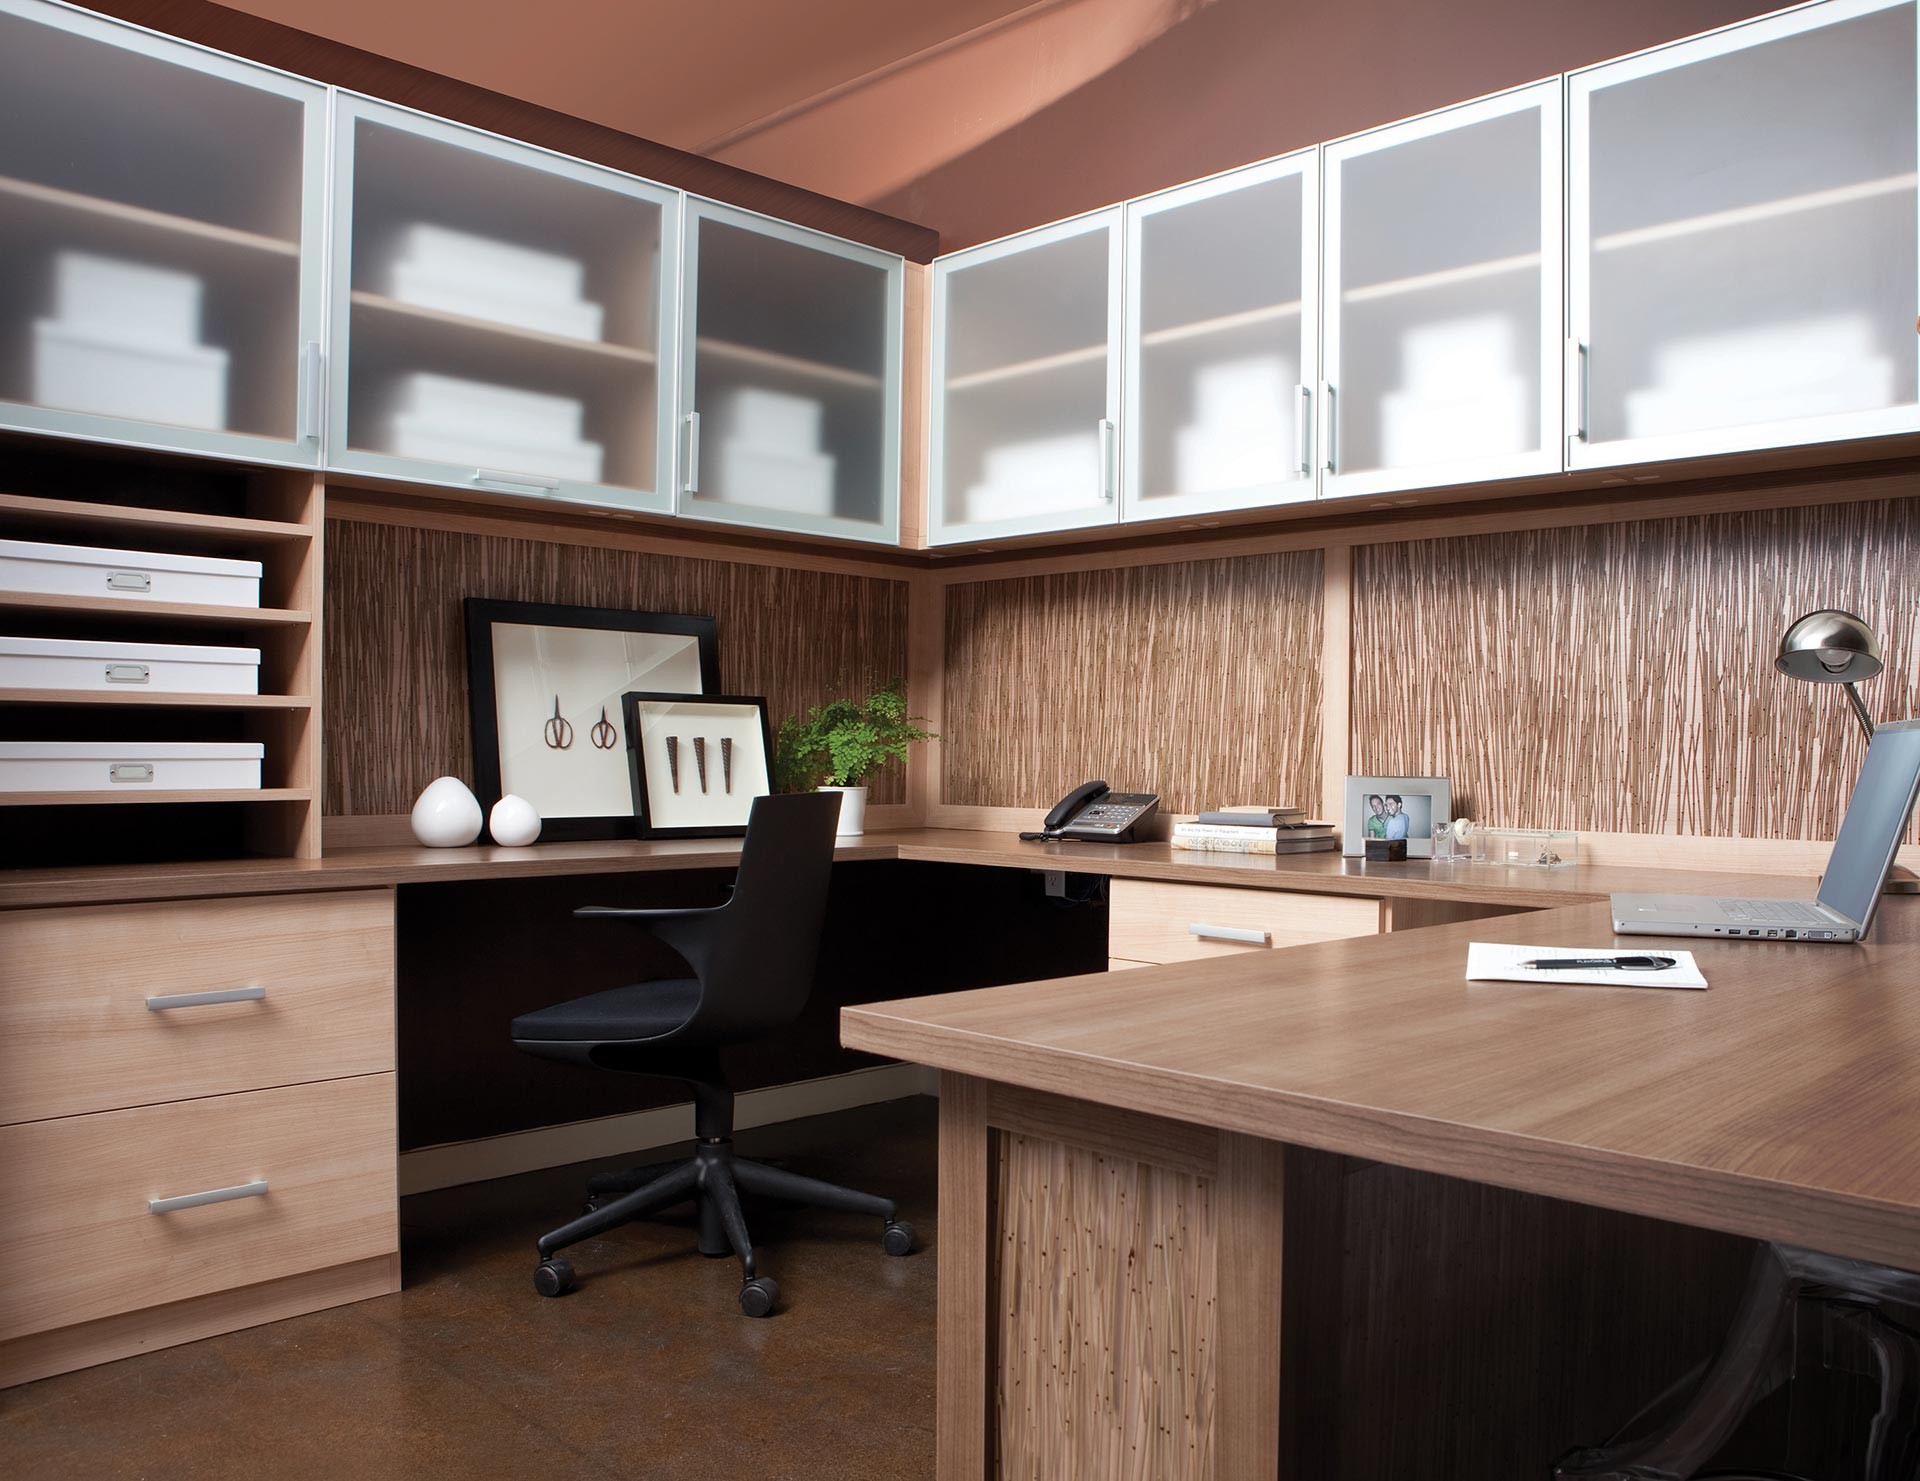 Commercial Storage Cabinets Amp Office Solutions